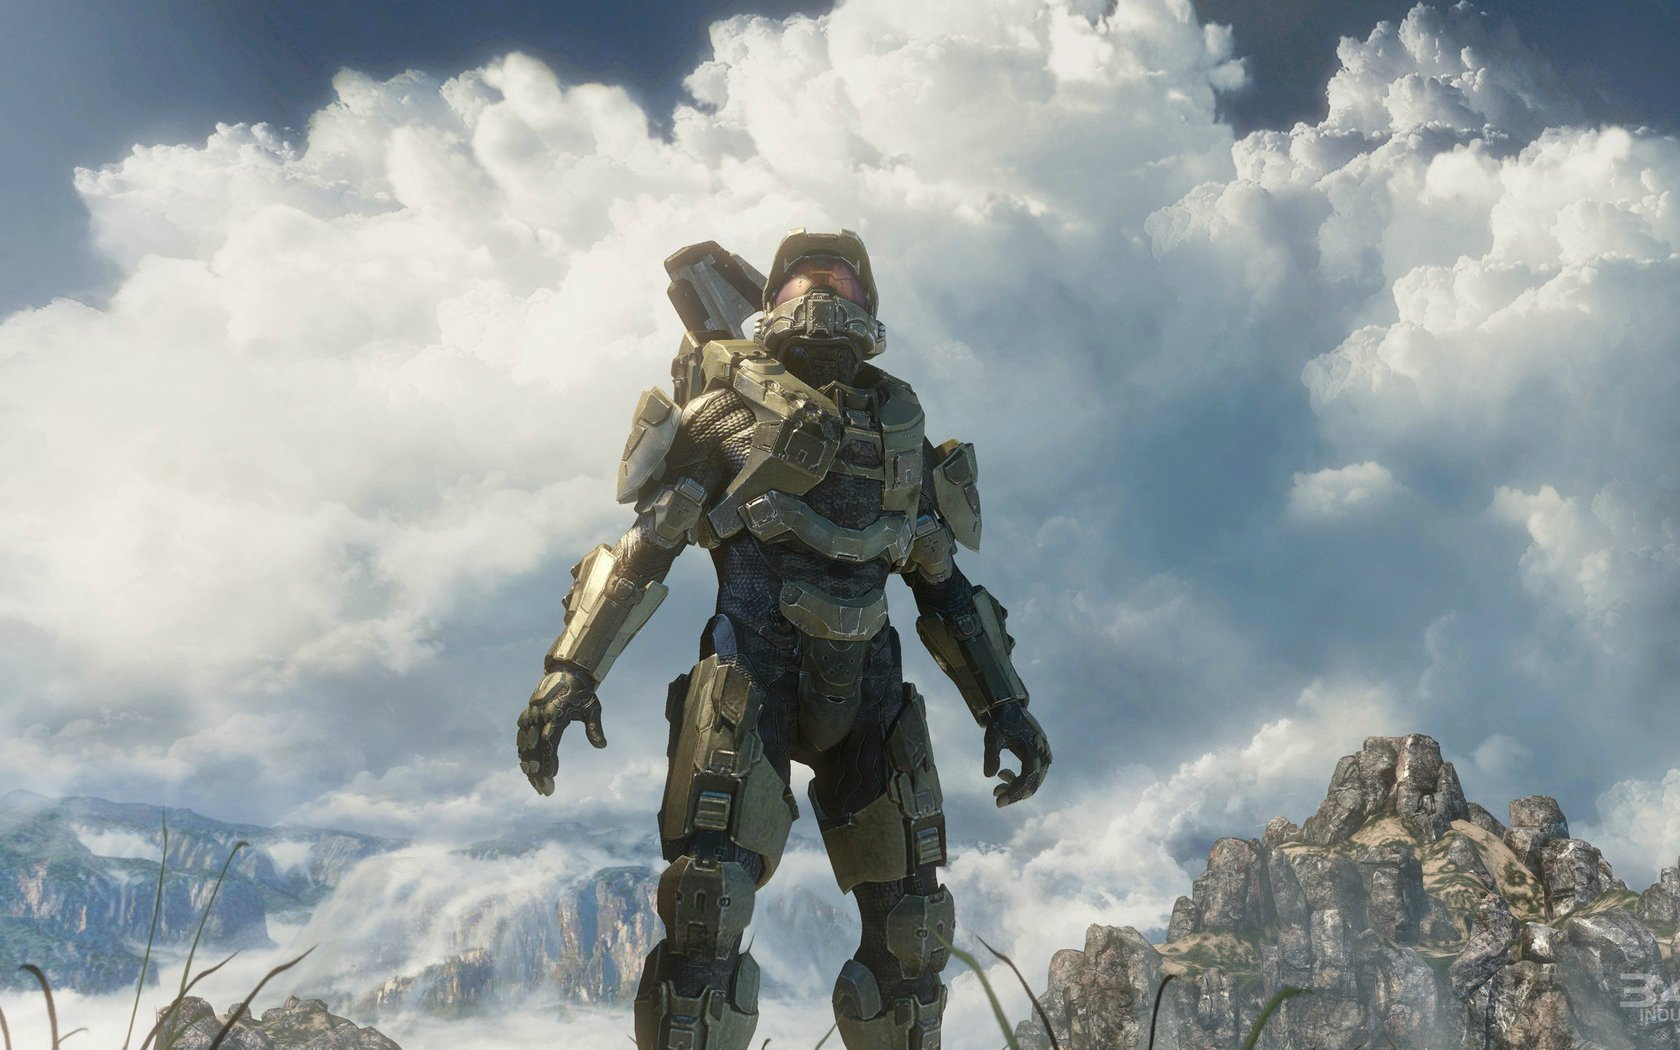 Download-Halo-4-Wallpaper-Background